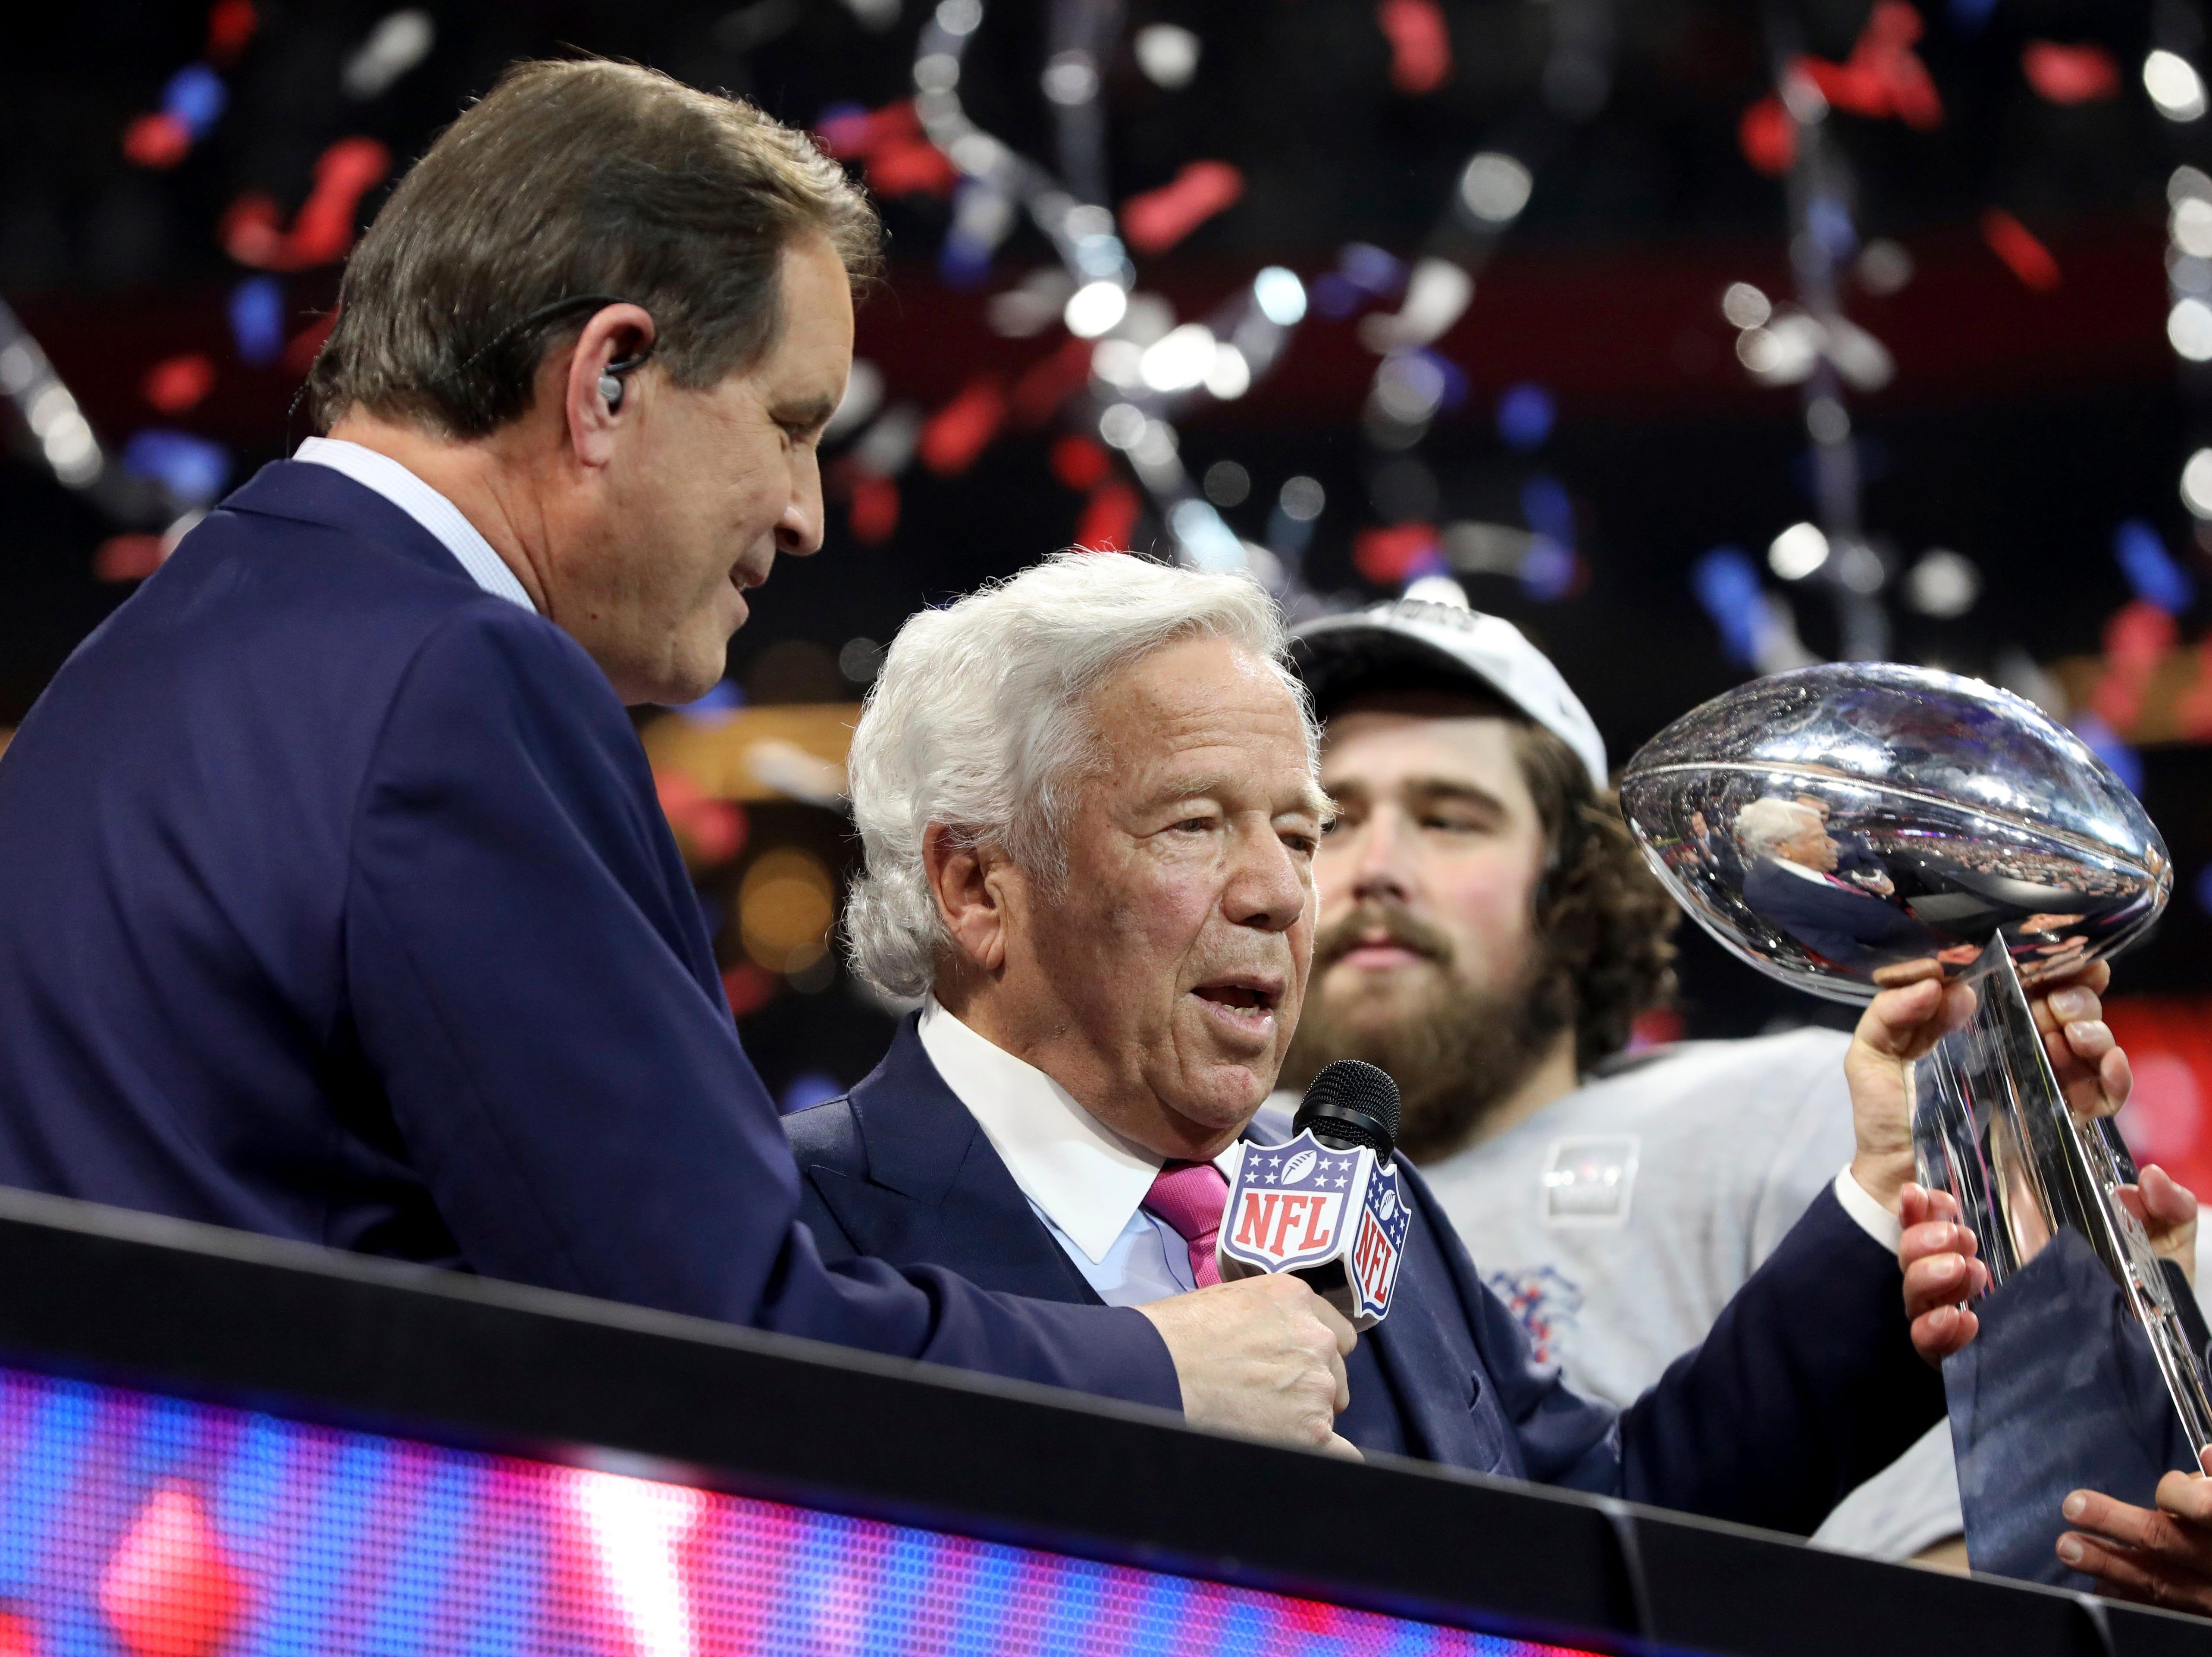 New England Patriots owner Robert Kraft celebrates a win against the Los Angeles Rams after NFL Super Bowl 53, Sunday, February 3, 2019 in Atlanta. The Patriots won 13-3.